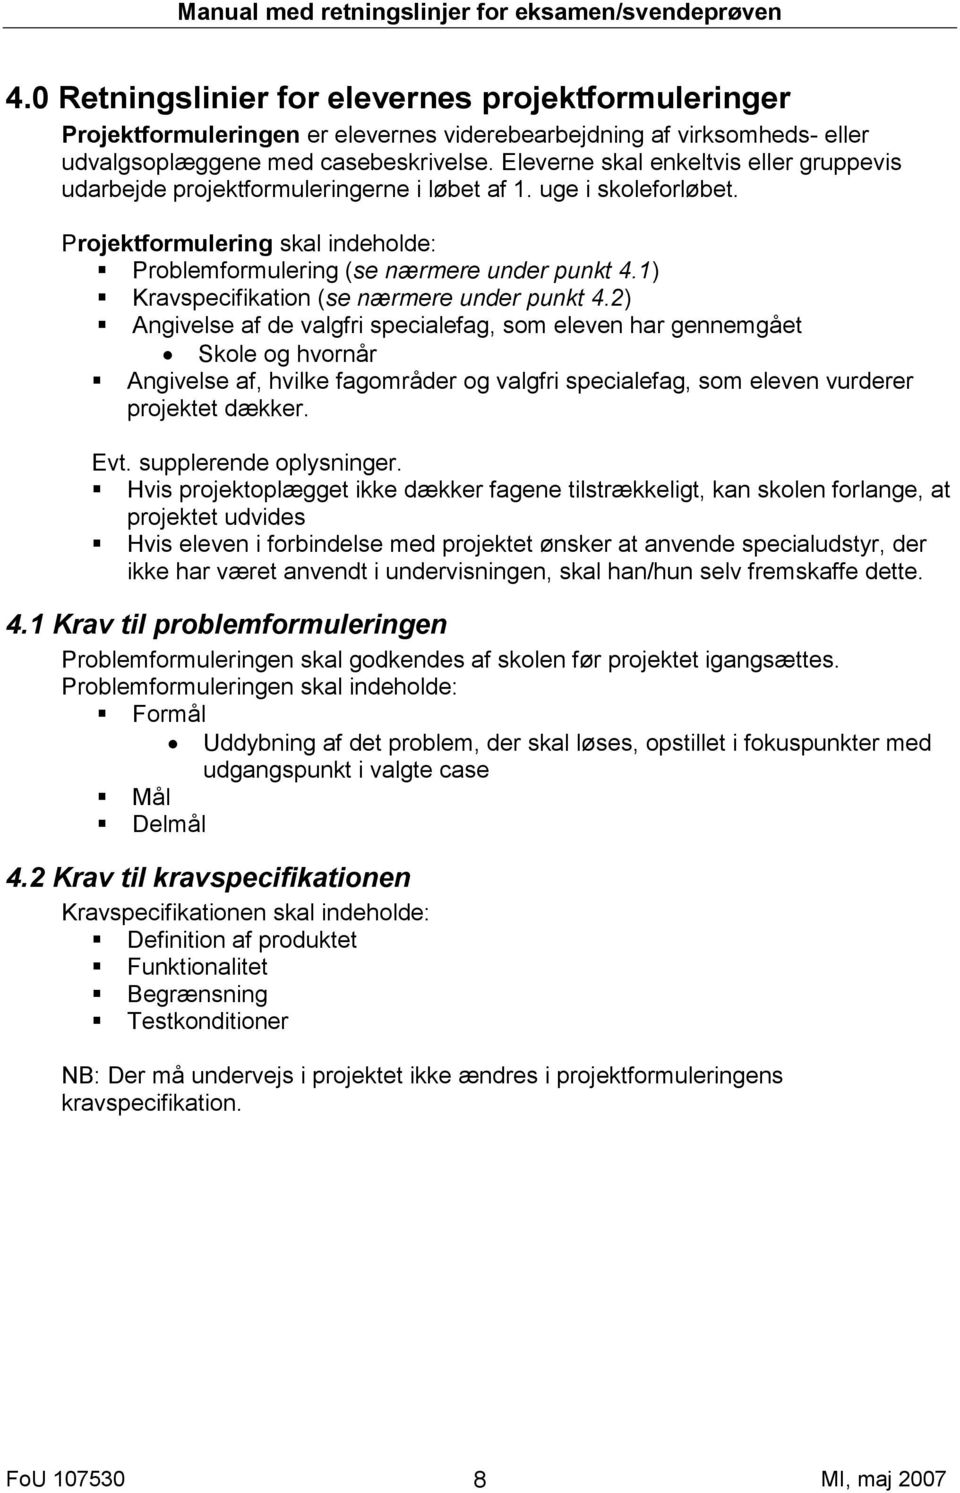 1) Kravspecifikation (se nærmere under punkt 4.